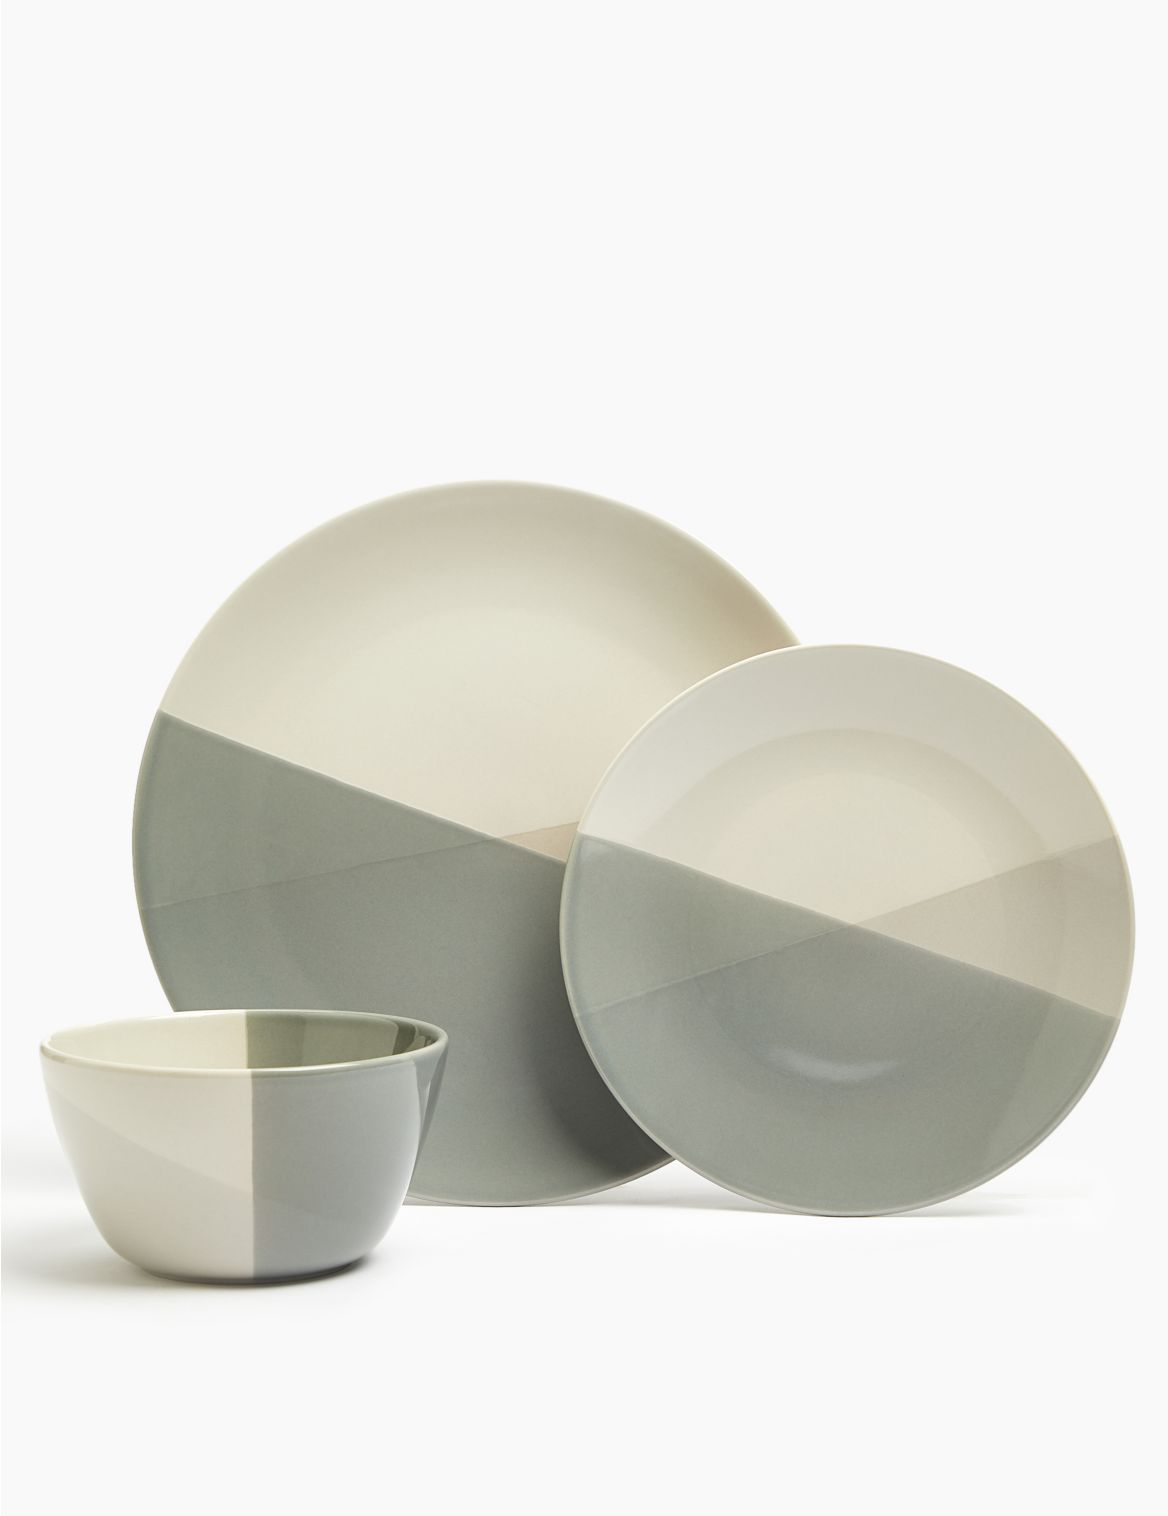 12 Piece Dipped Stoneware Crockery Set grey mix